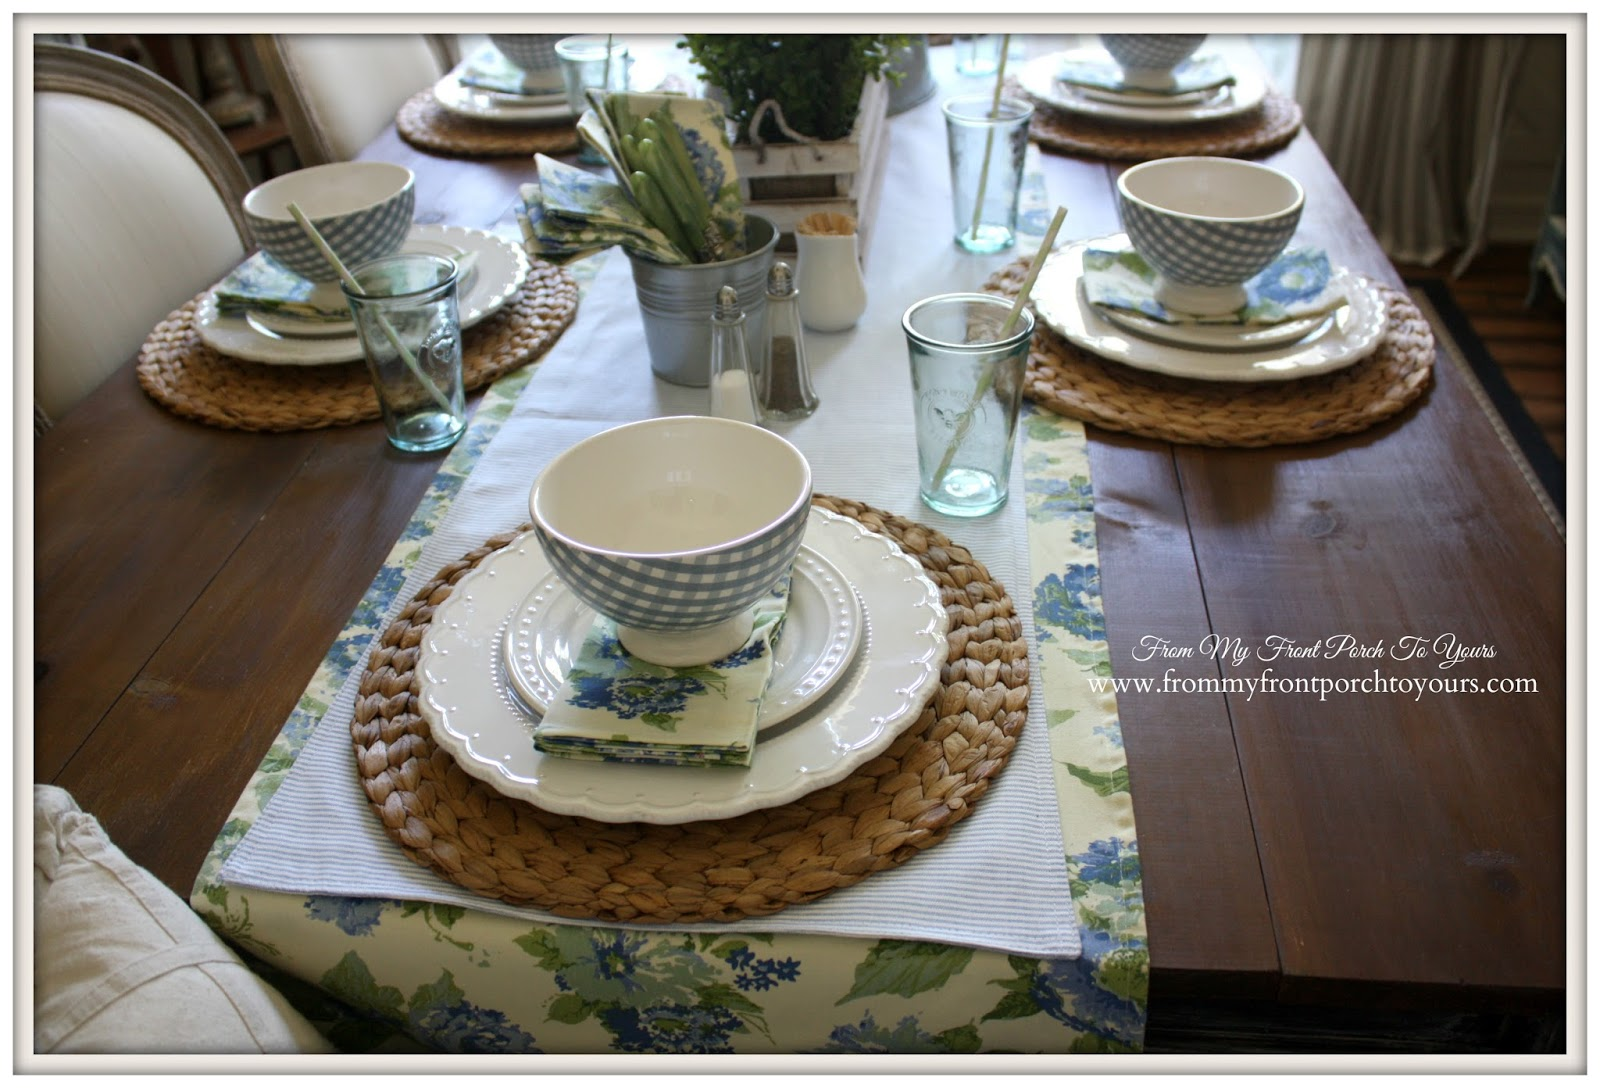 Farmhouse accessories used to create a spring brunch table setting.